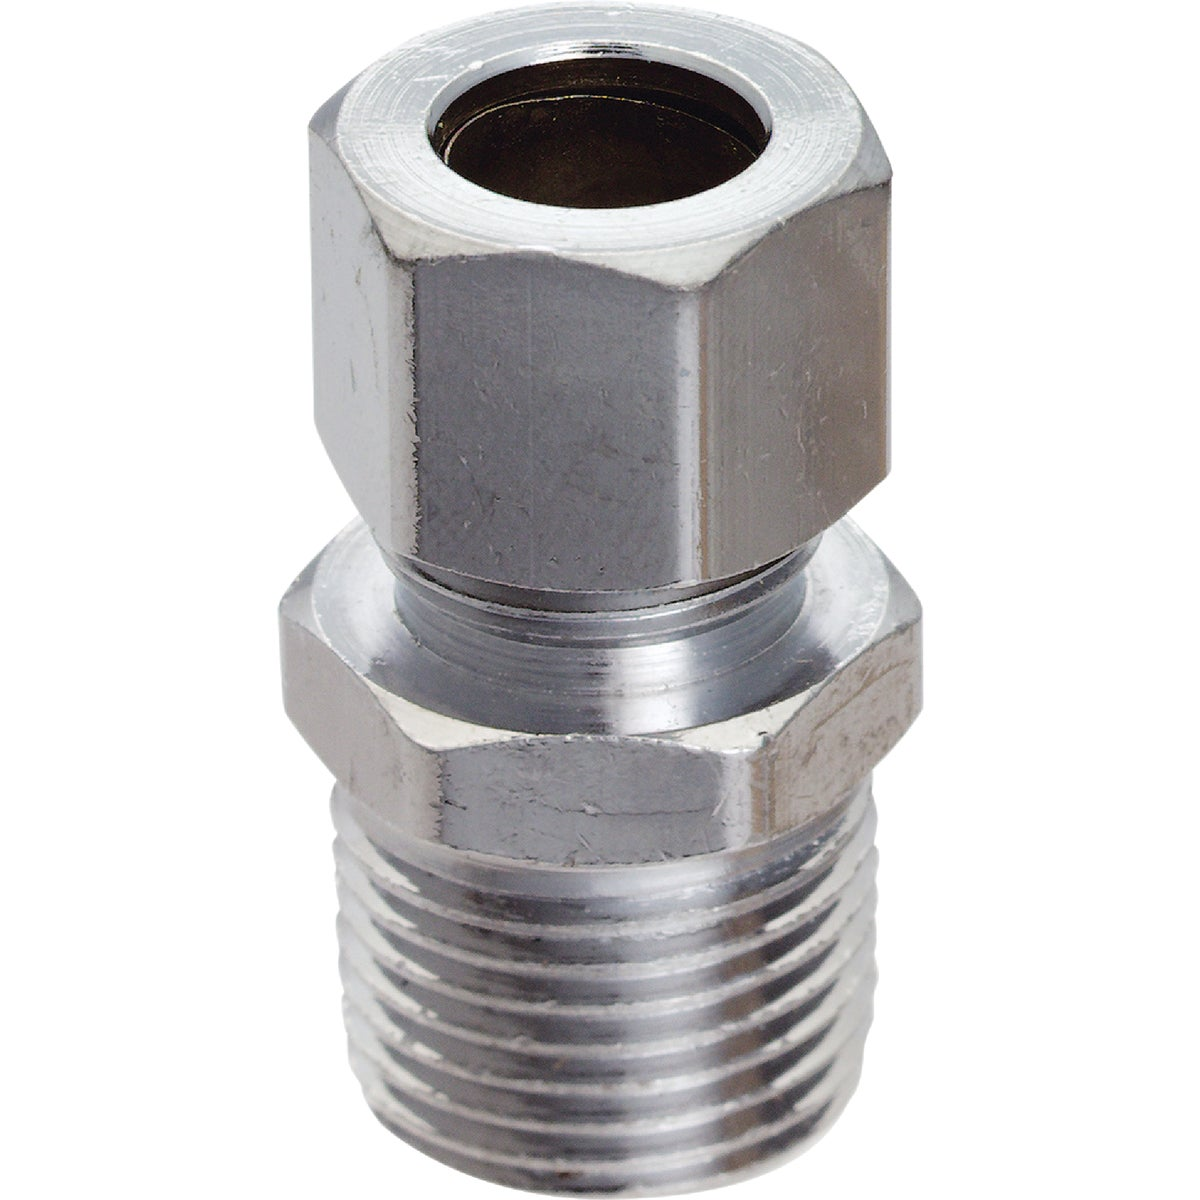 3/8MIPX3/8OD STRT UNION - 455929 by Plumb Pak/keeney Mfg